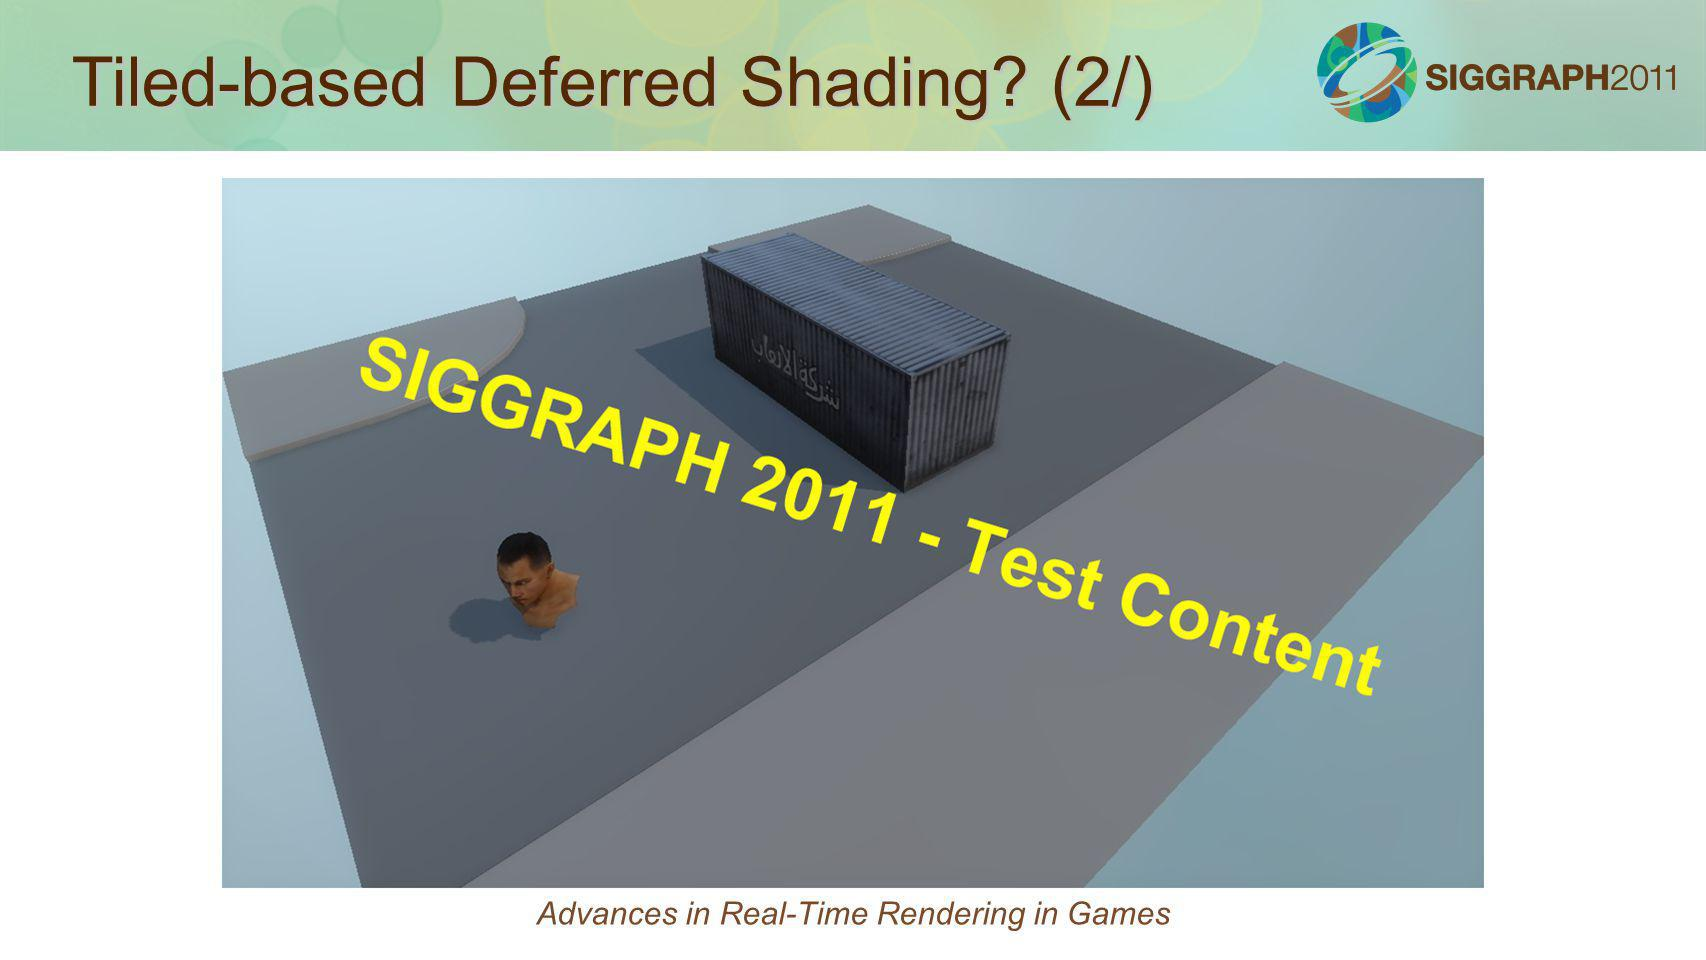 Advances in Real-Time Rendering in Games